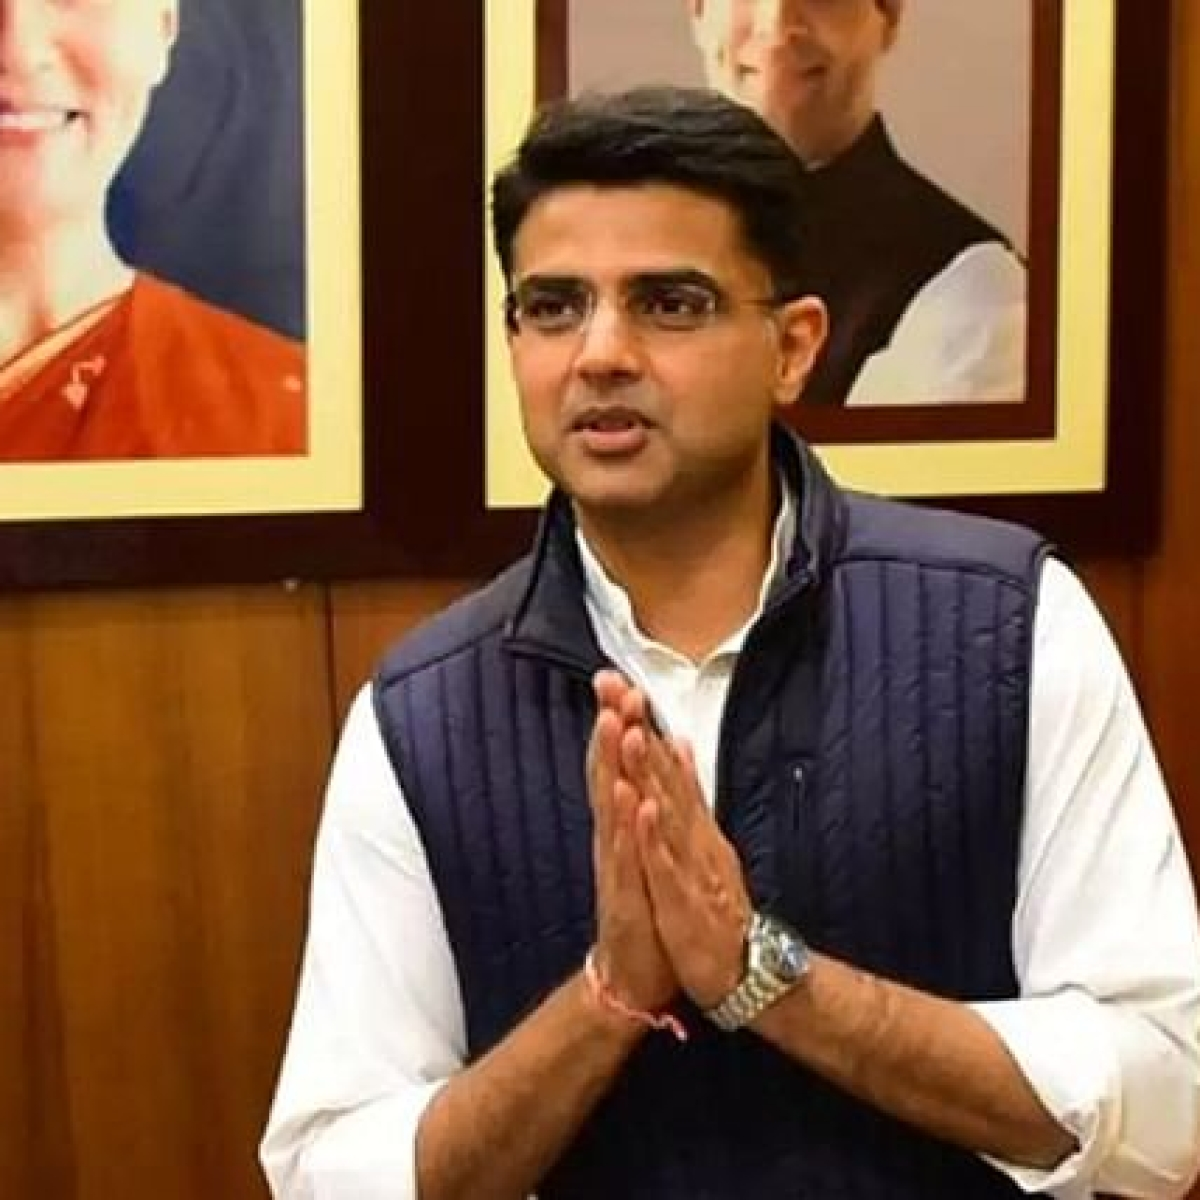 Rajasthan Row Latest Updates: Sachin Pilot removed as Deputy Chief Minister